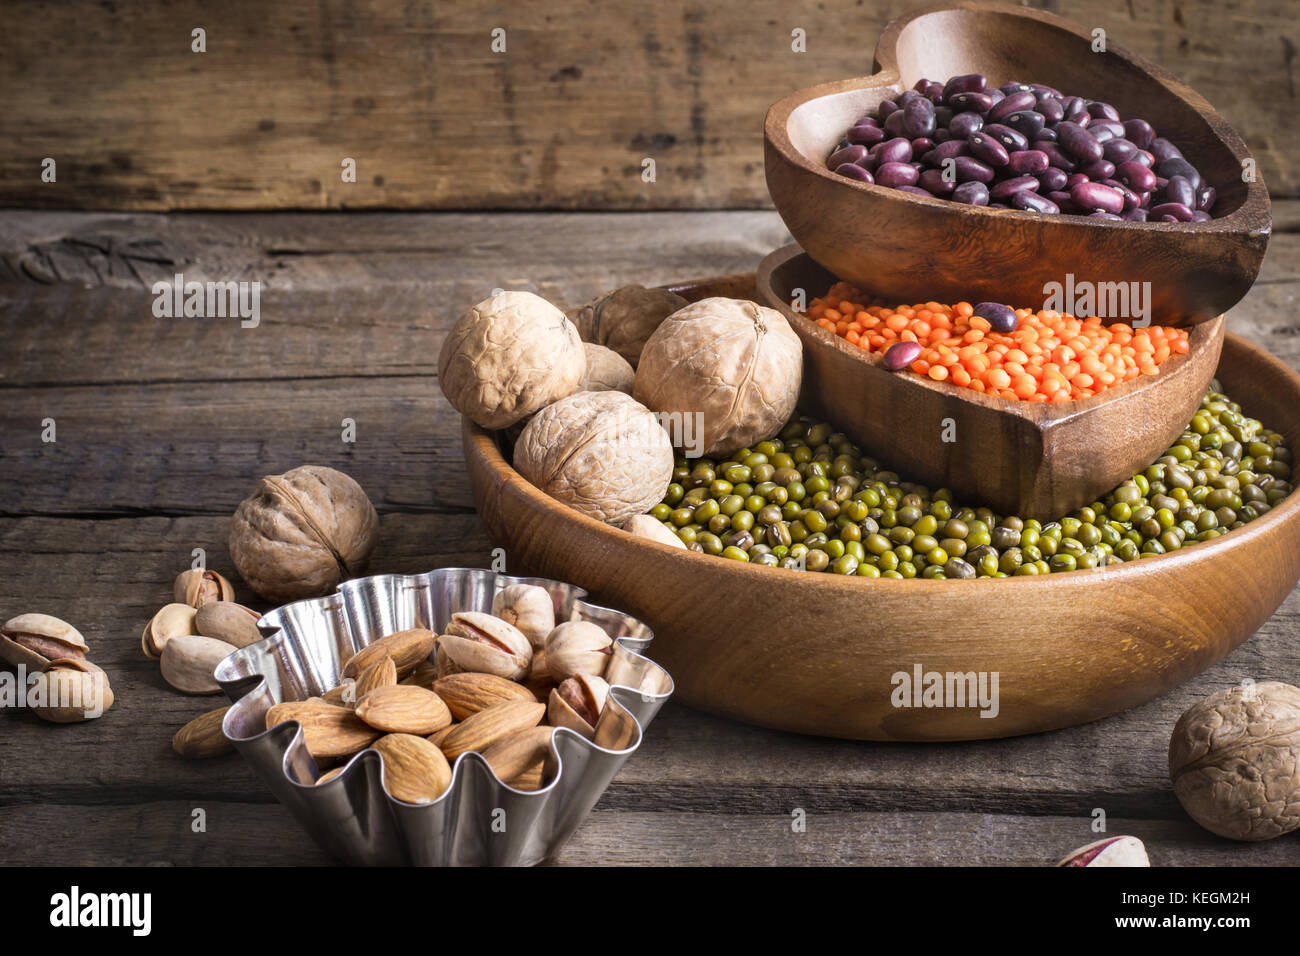 Sources of vegetable protein are various legumes and nuts. - Stock Image